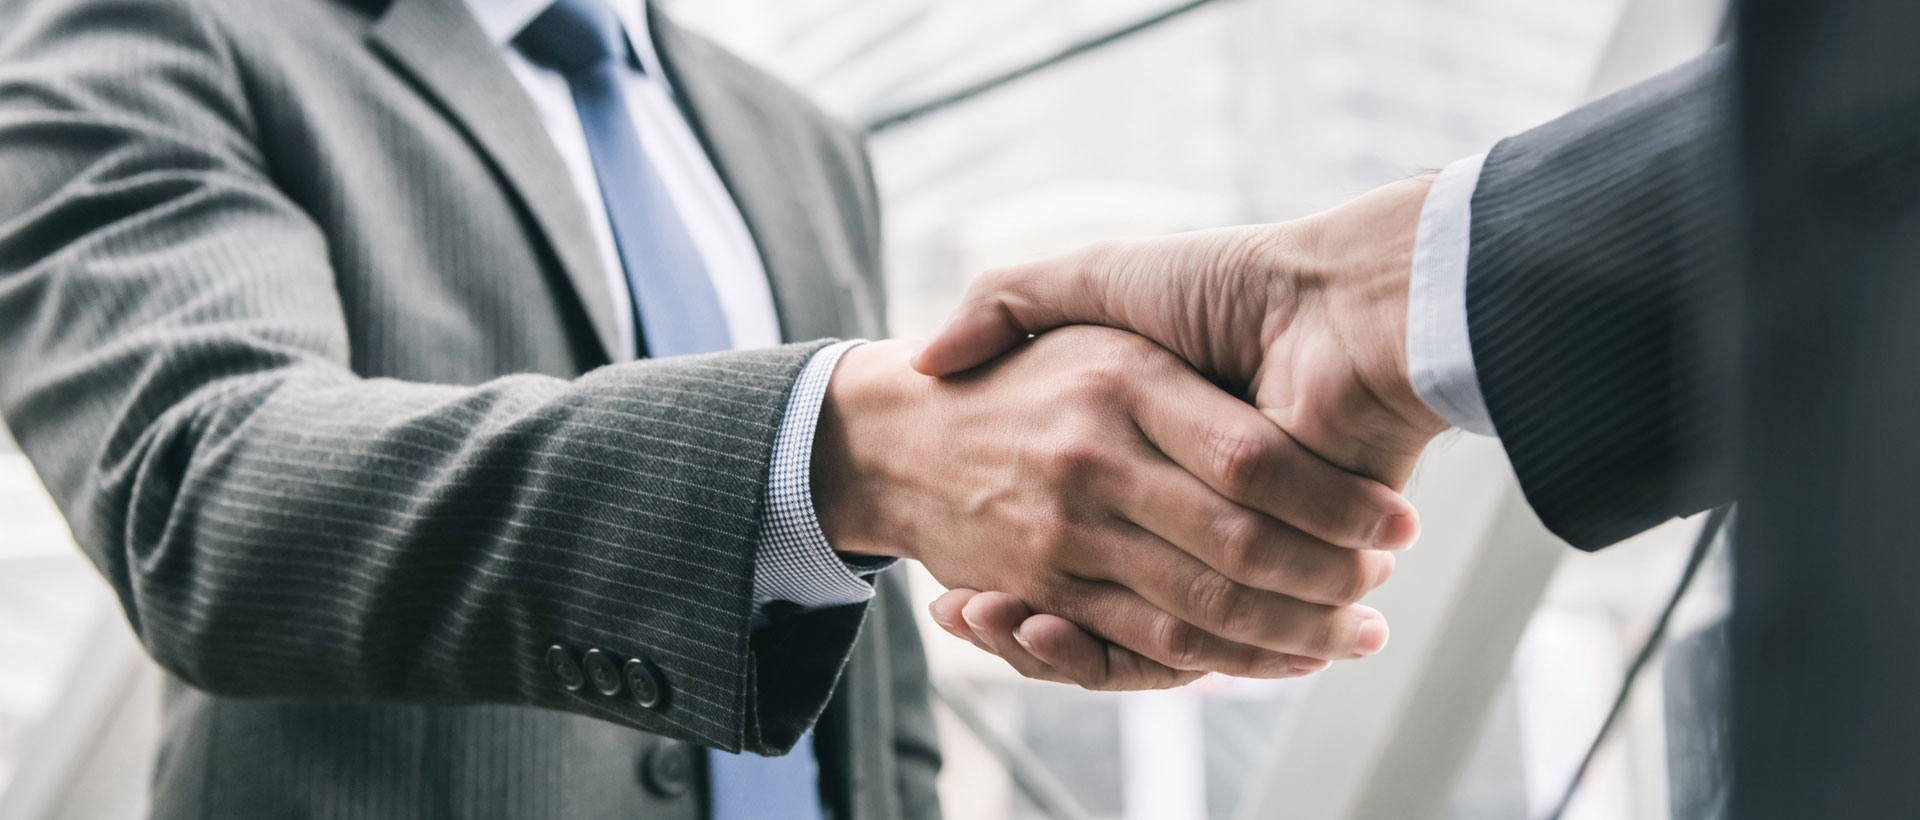 Why should you hire an M&A advisor to sell your firm? | Arrowvine